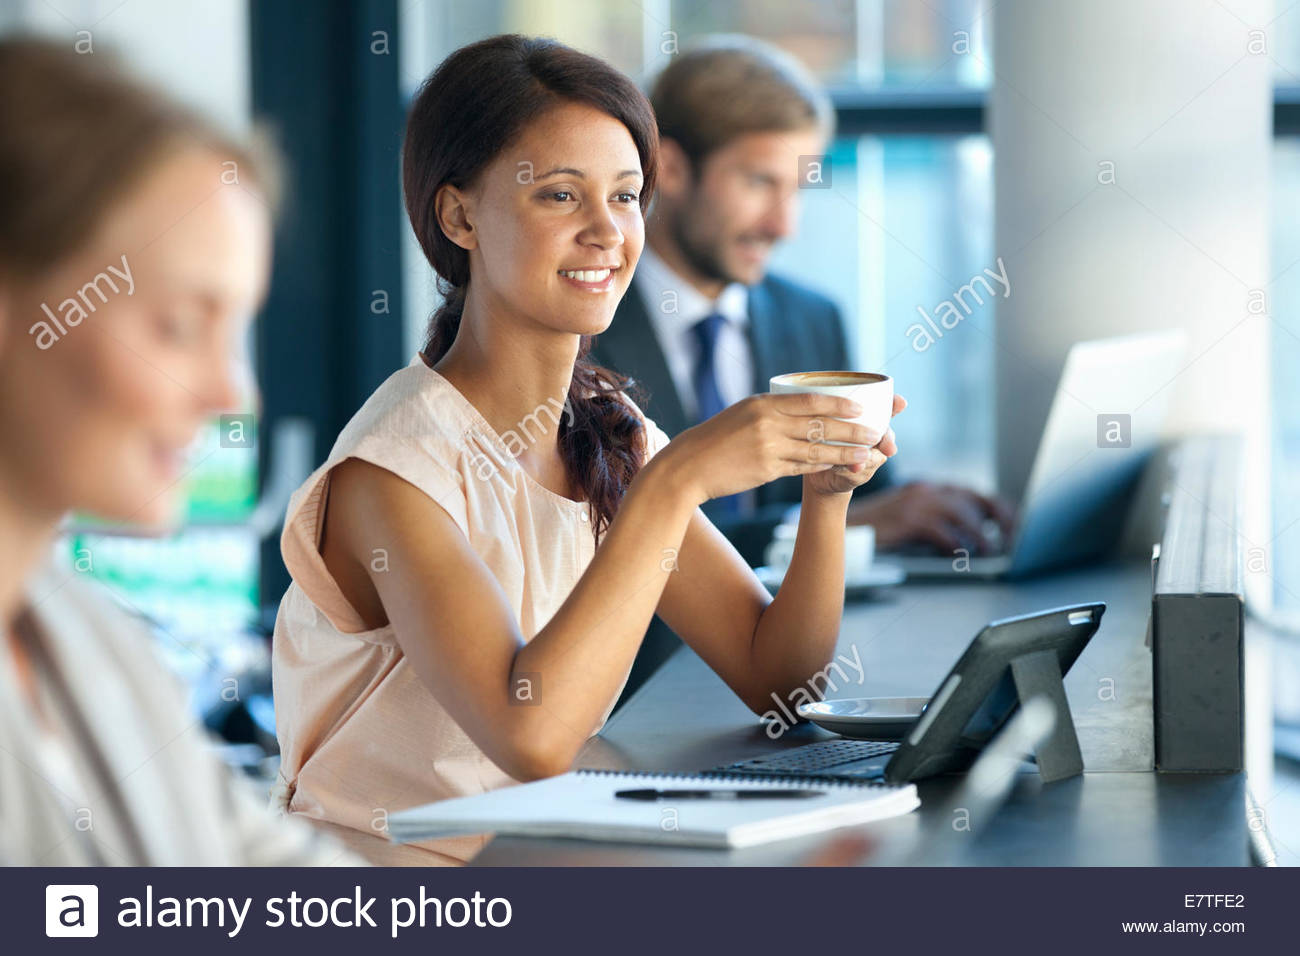 Smiling businesswoman drinking coffee in coffee shop - Stock Image